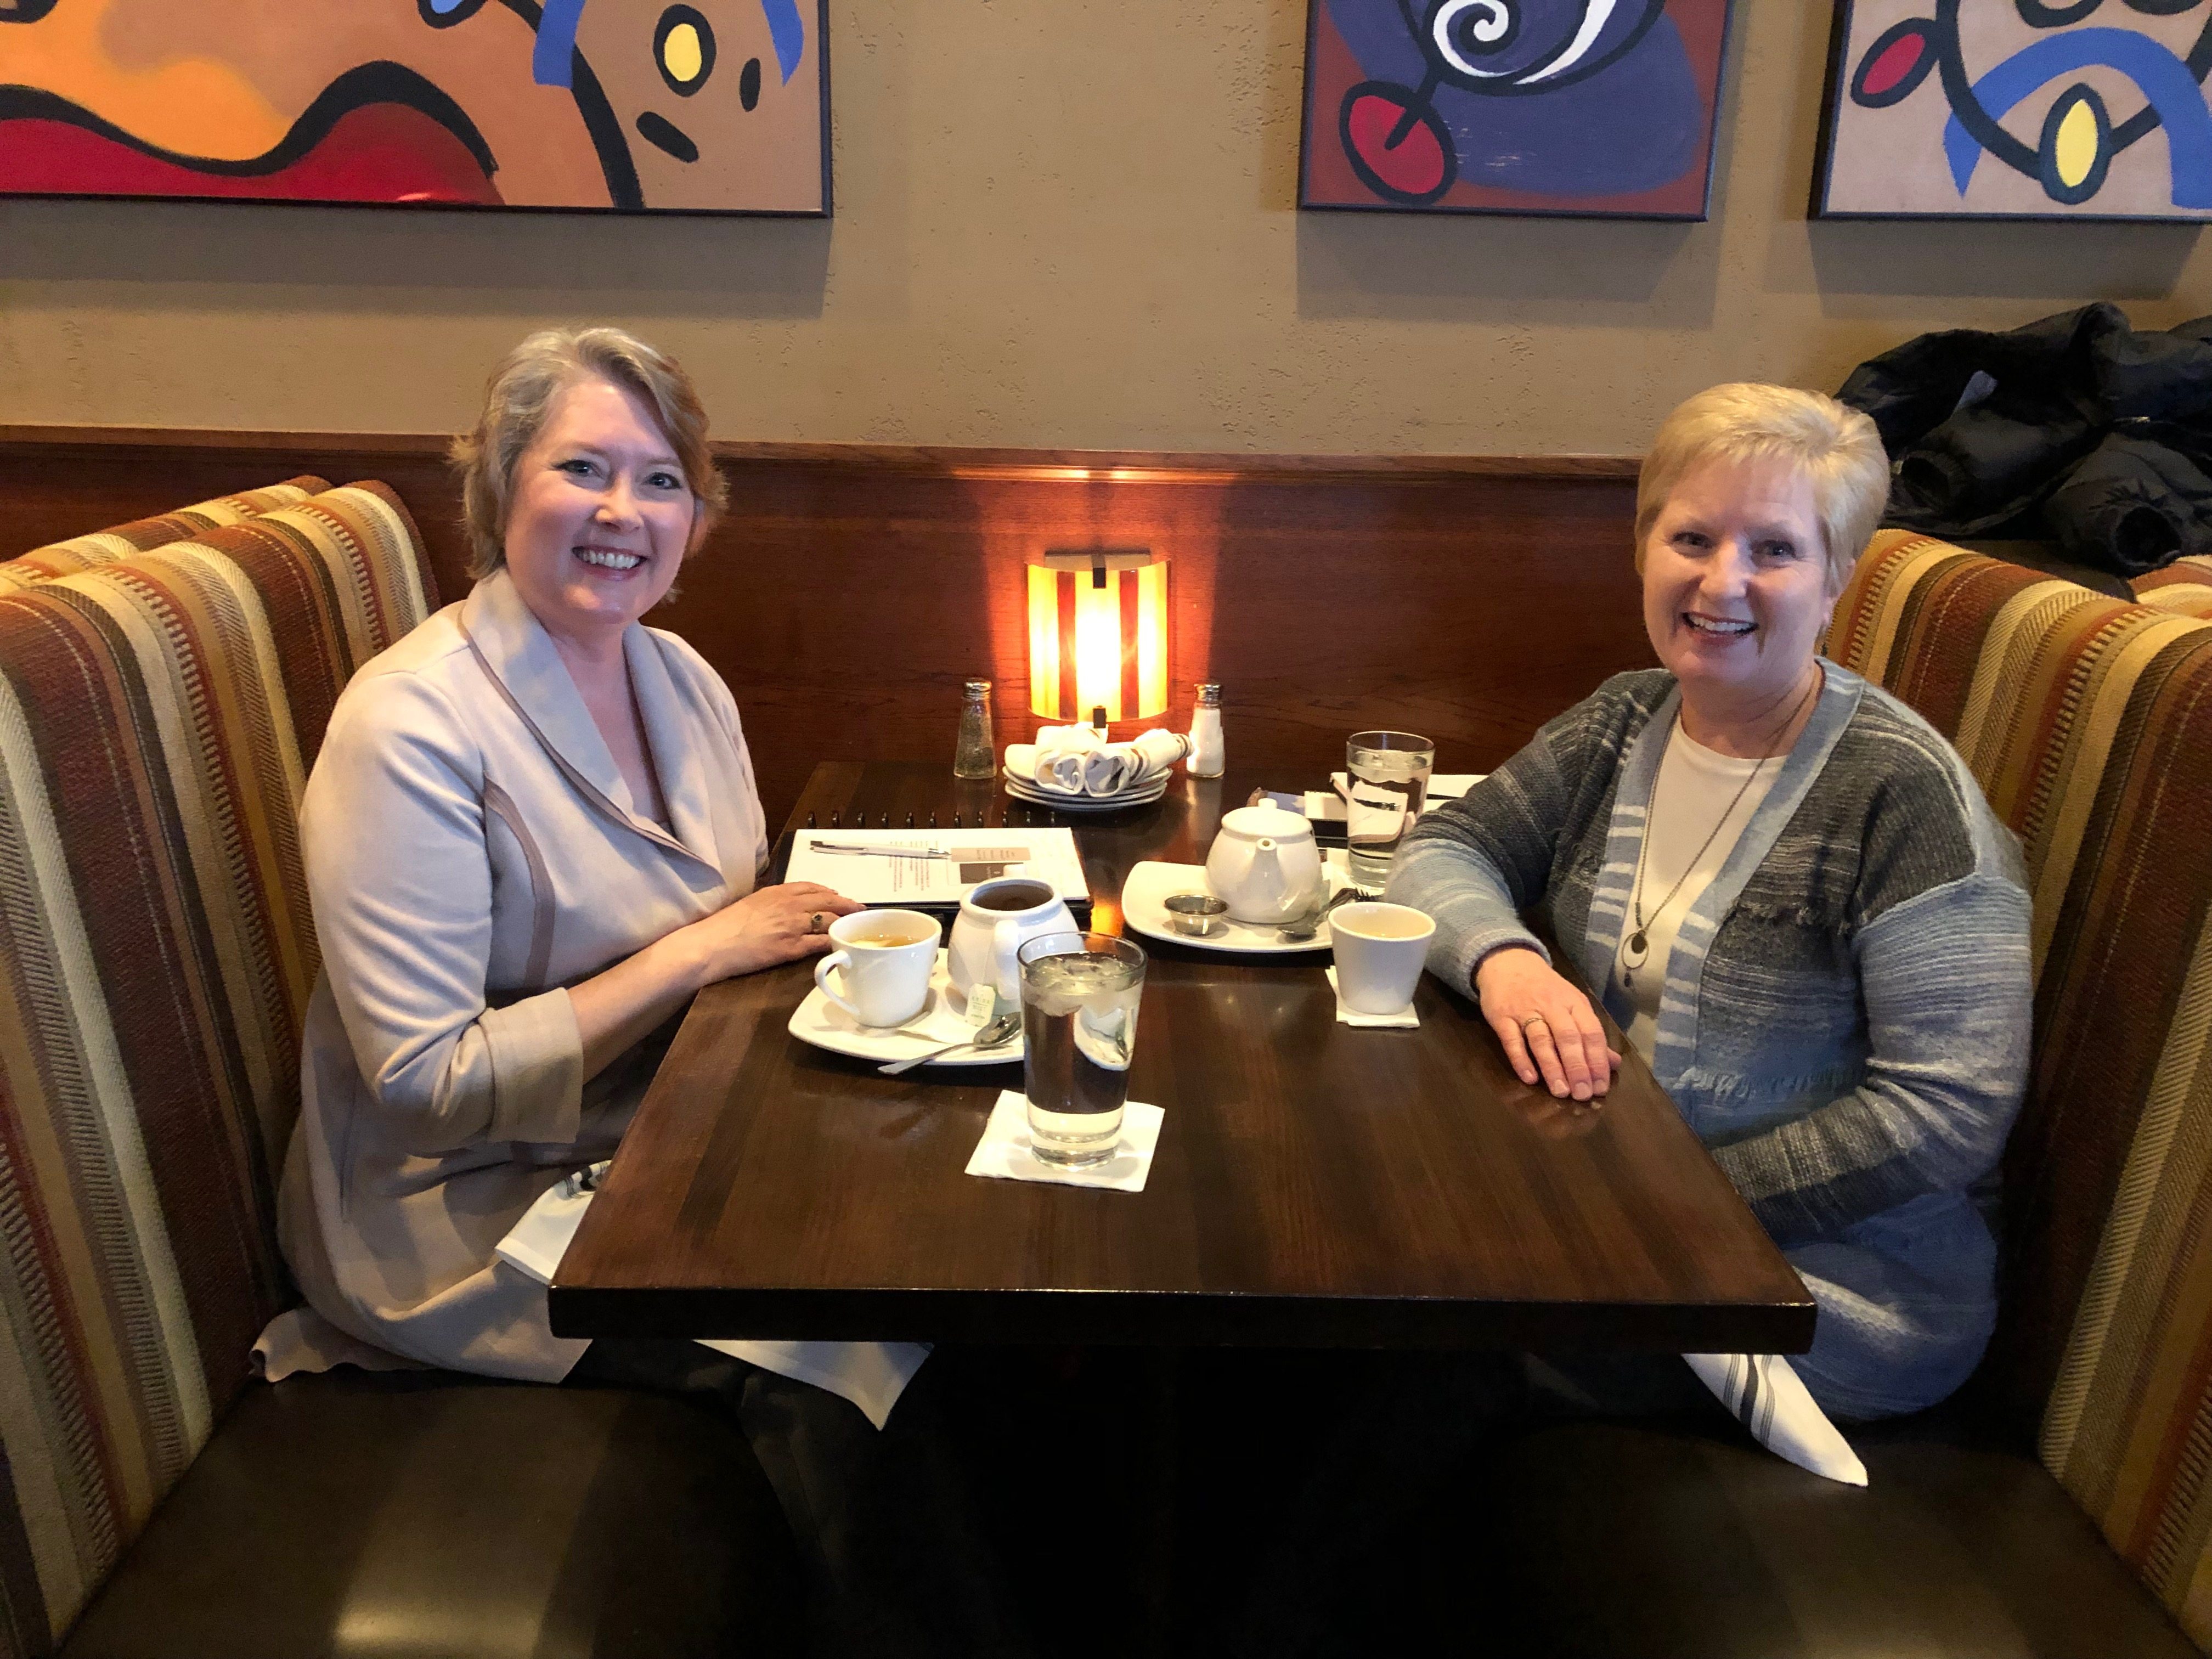 Meeting with Lorri Anderson of LogicPD